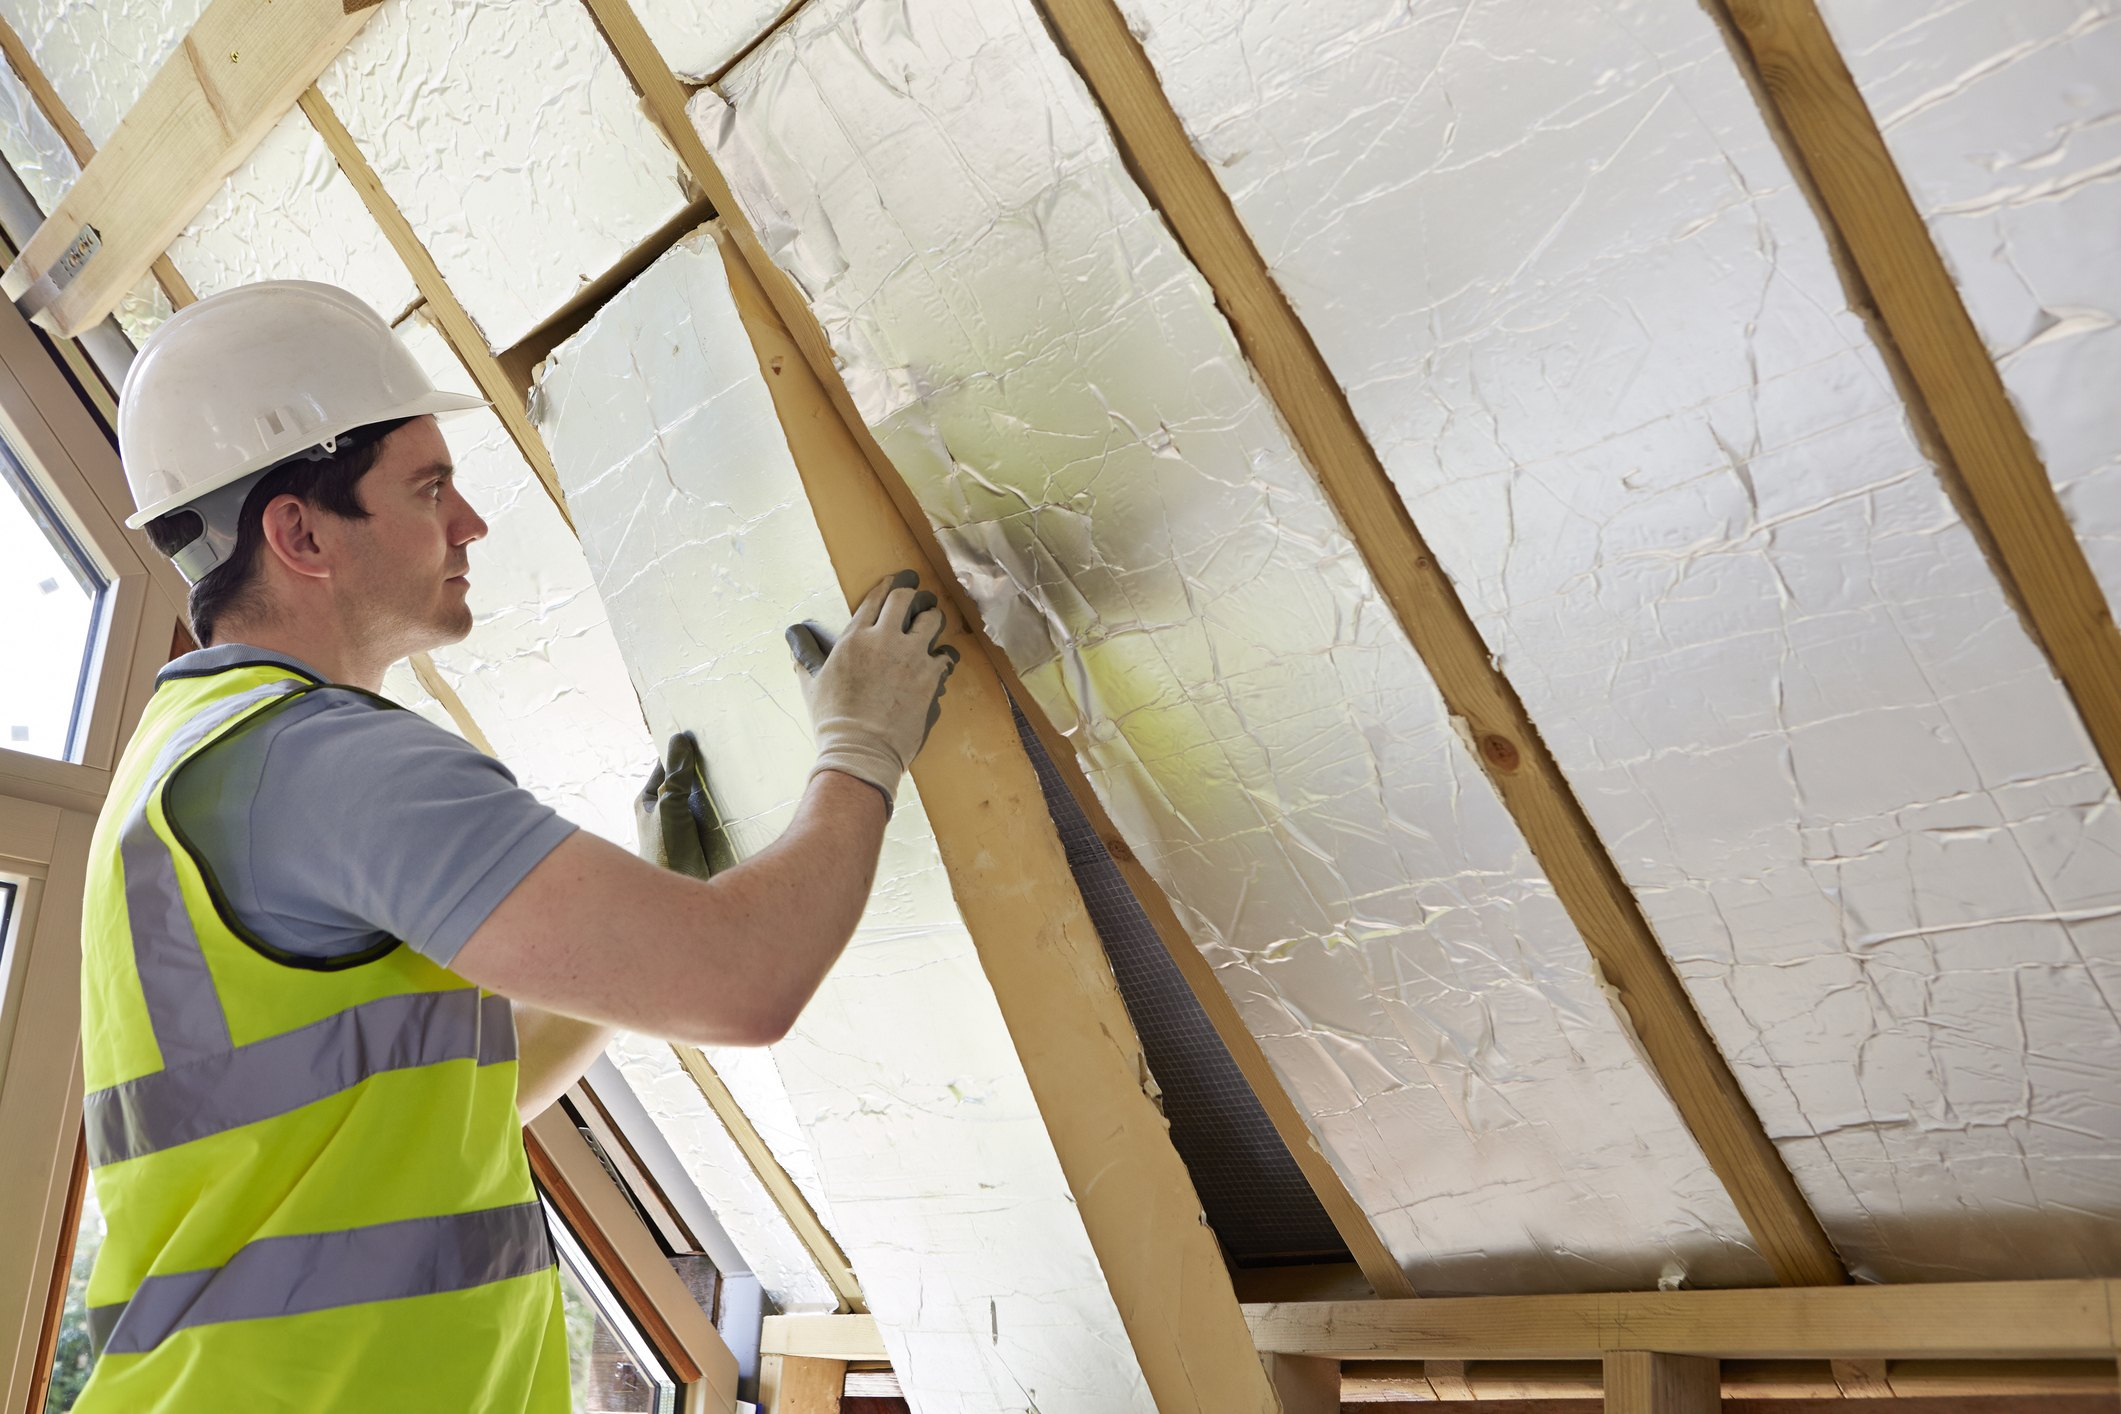 Builder Fitting Insulation Into Roof Of New Home